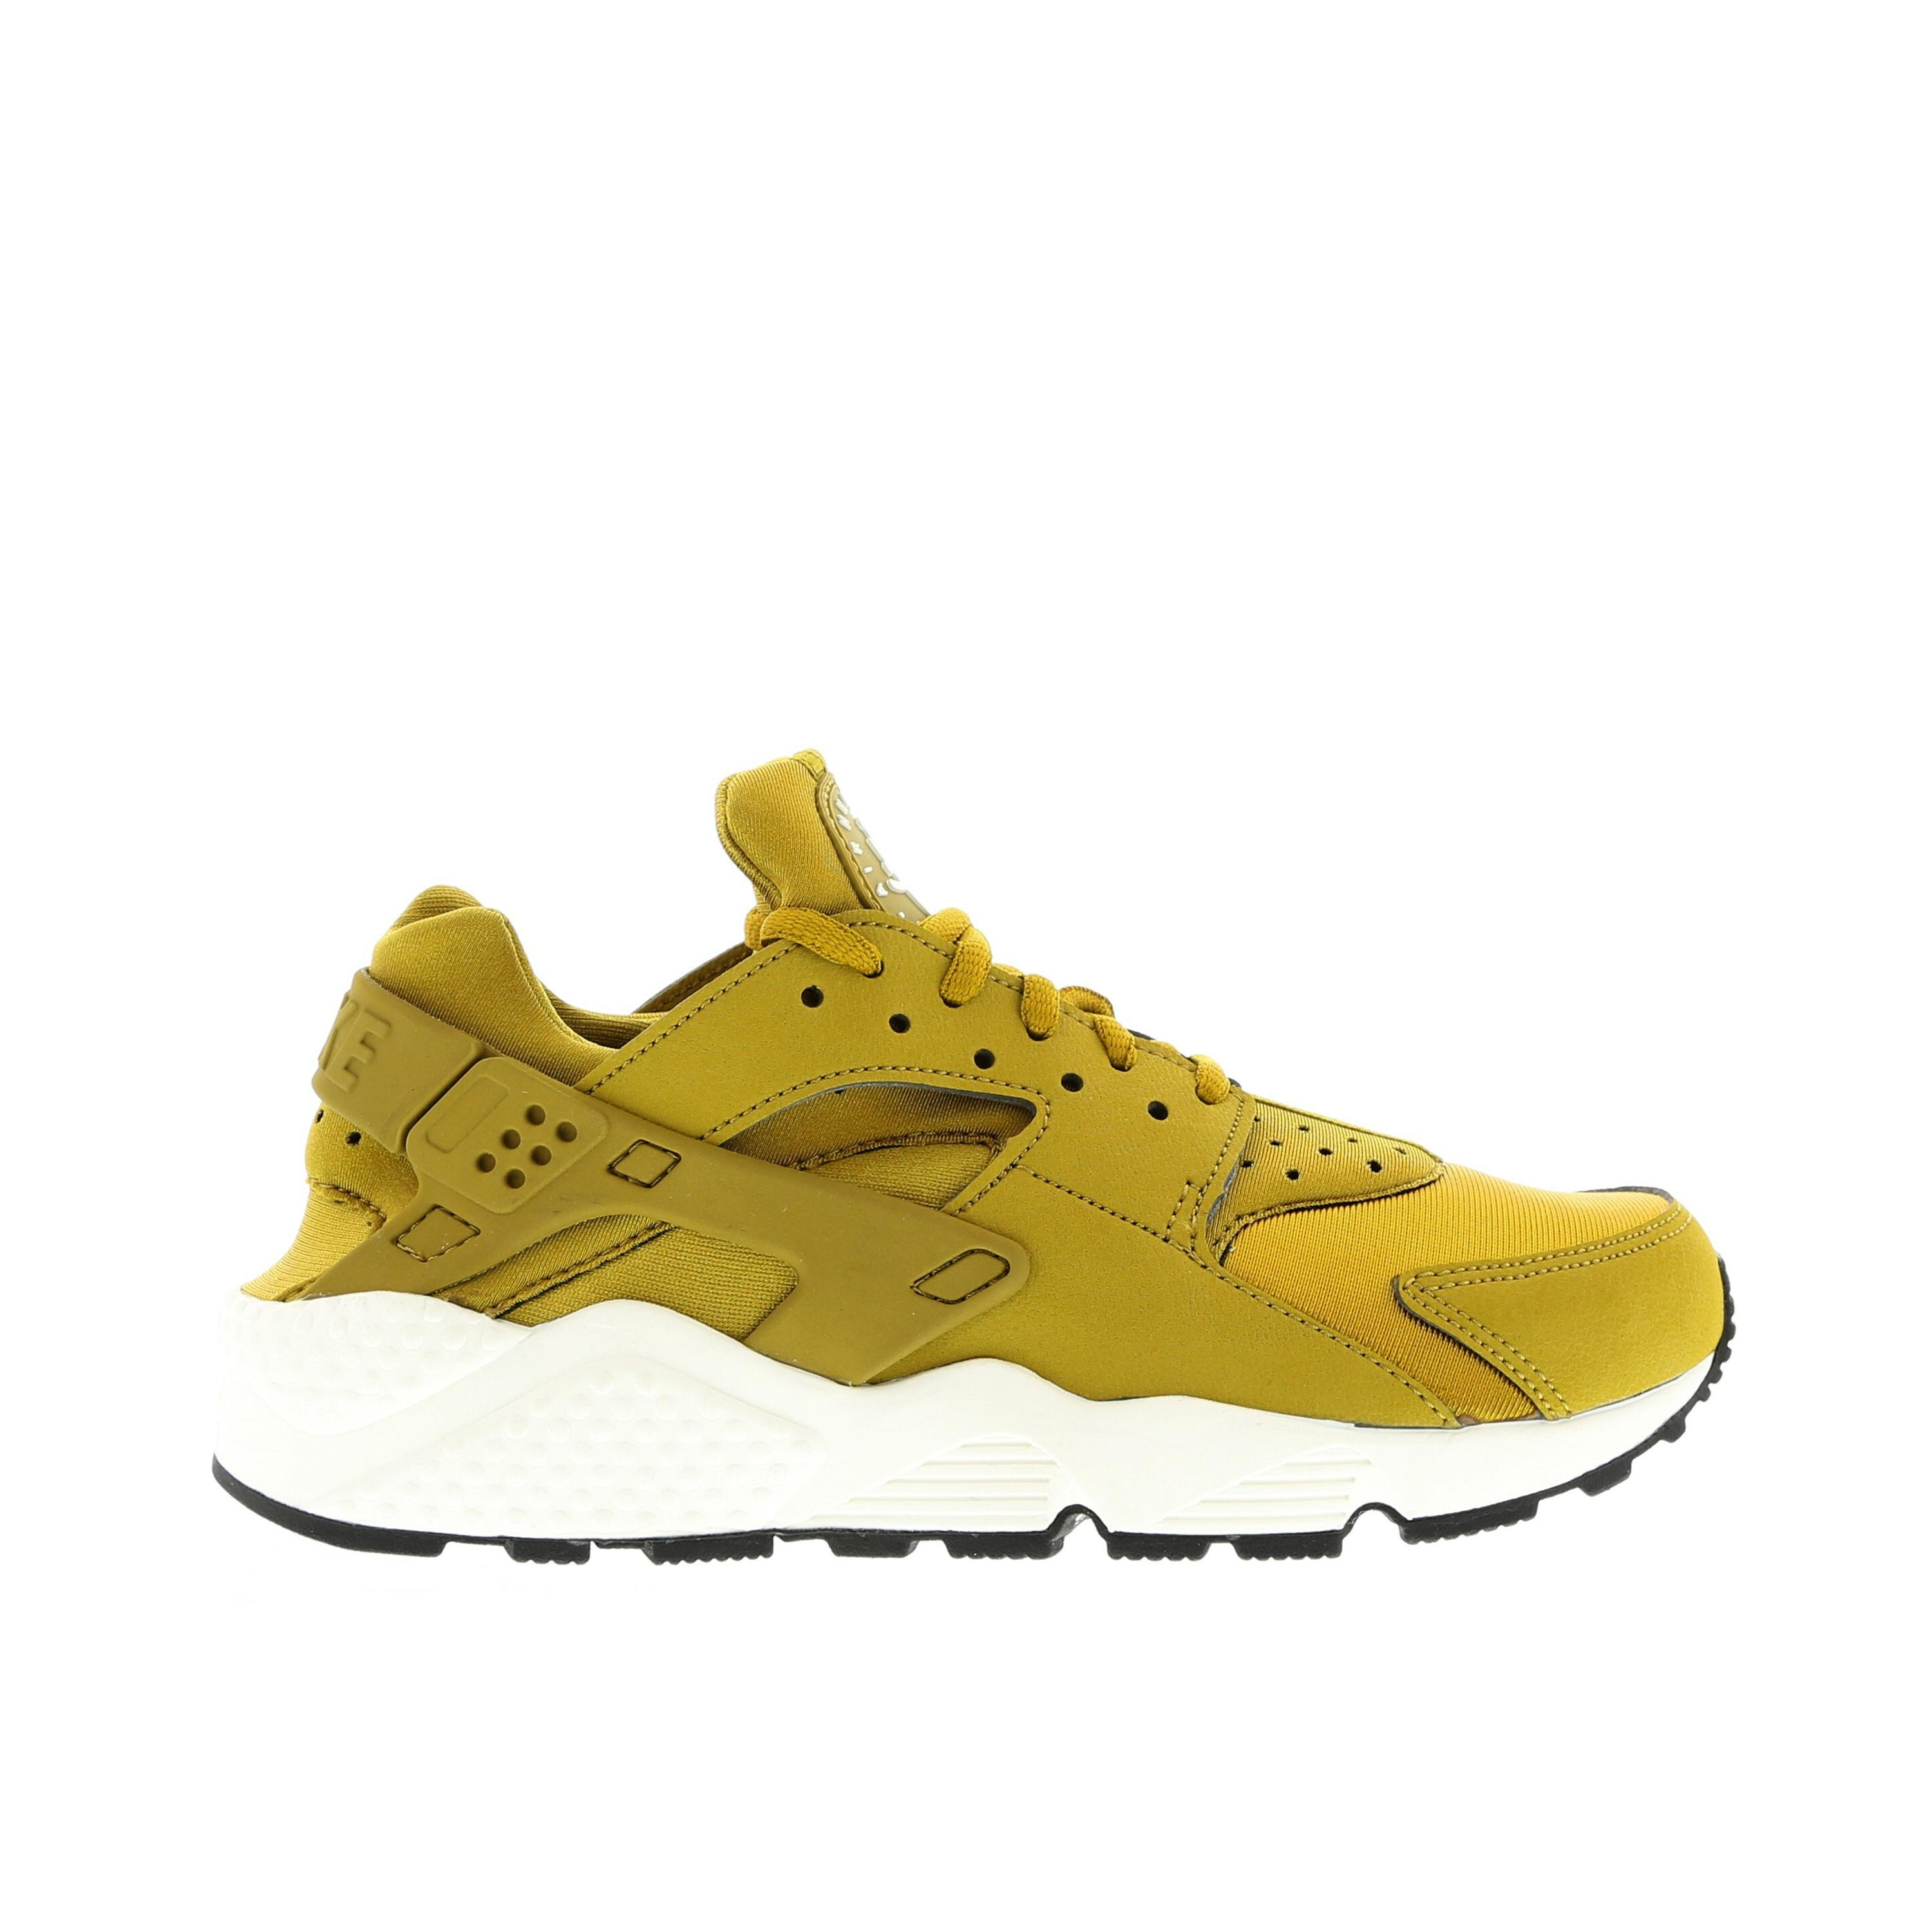 Nike Air Huarache 634835-700 Bronzine/Bronzine/Sail Mens Shoes